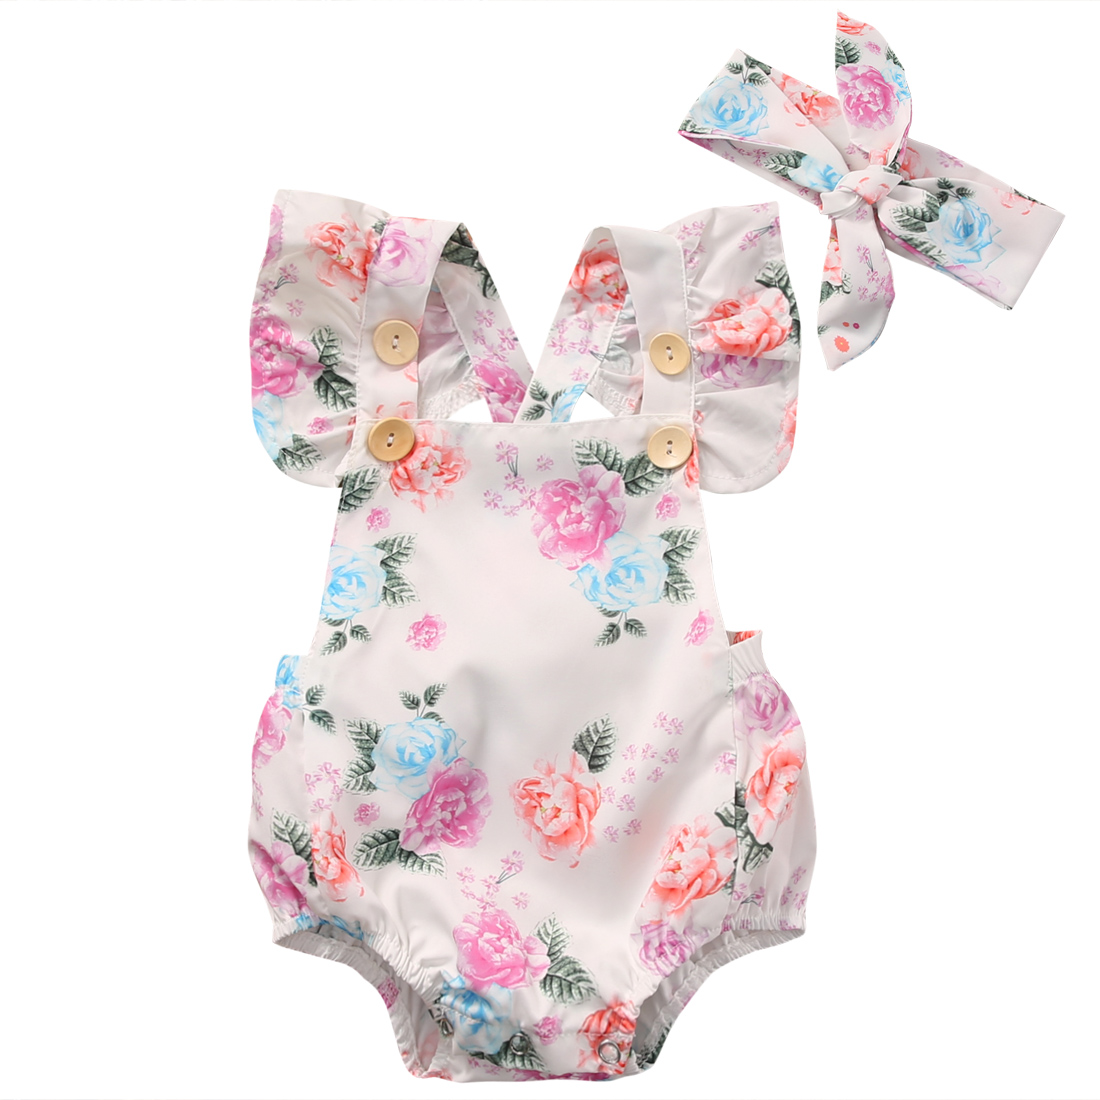 1e67b8fd692 2018 Hot Floral Baby Romper Clothes Set Summer Newborn Baby Girl Ruffled  Sleeve Bodysuit Jumpsuit Headband 2pcs Outfit Sunsuit-in Clothing Sets from  Mother ...